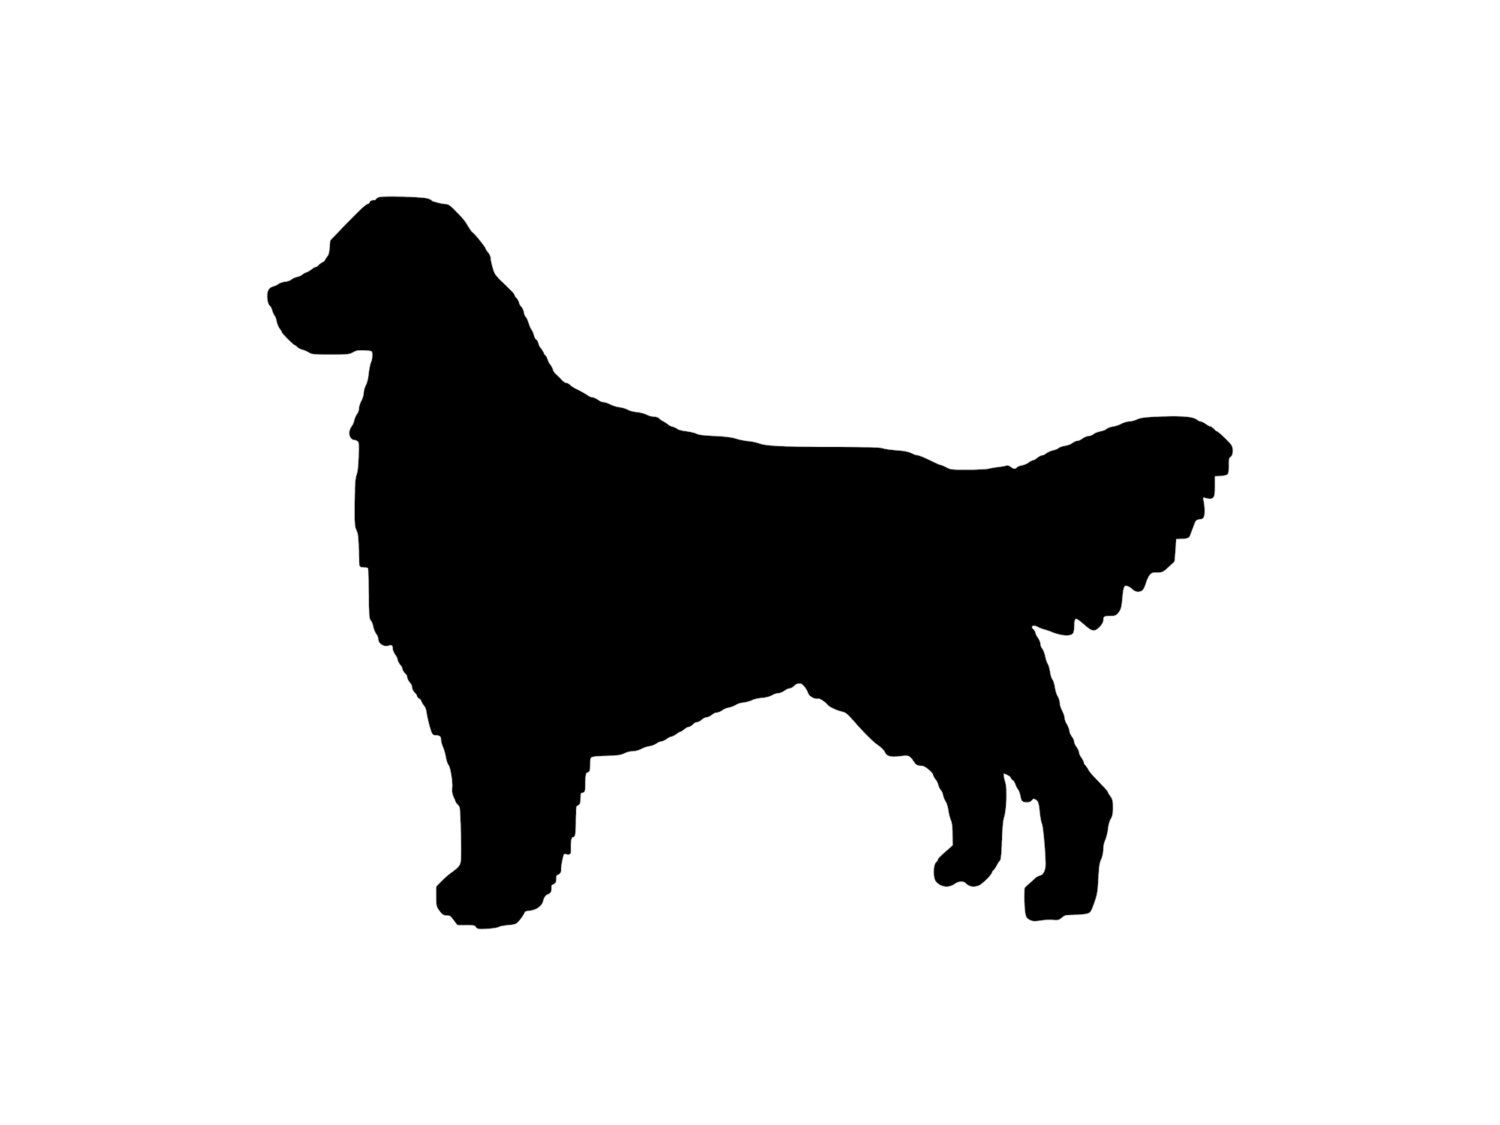 Grab Your Golden Retriever Dog Outdoor Vinyl Silhouette K9 Breed